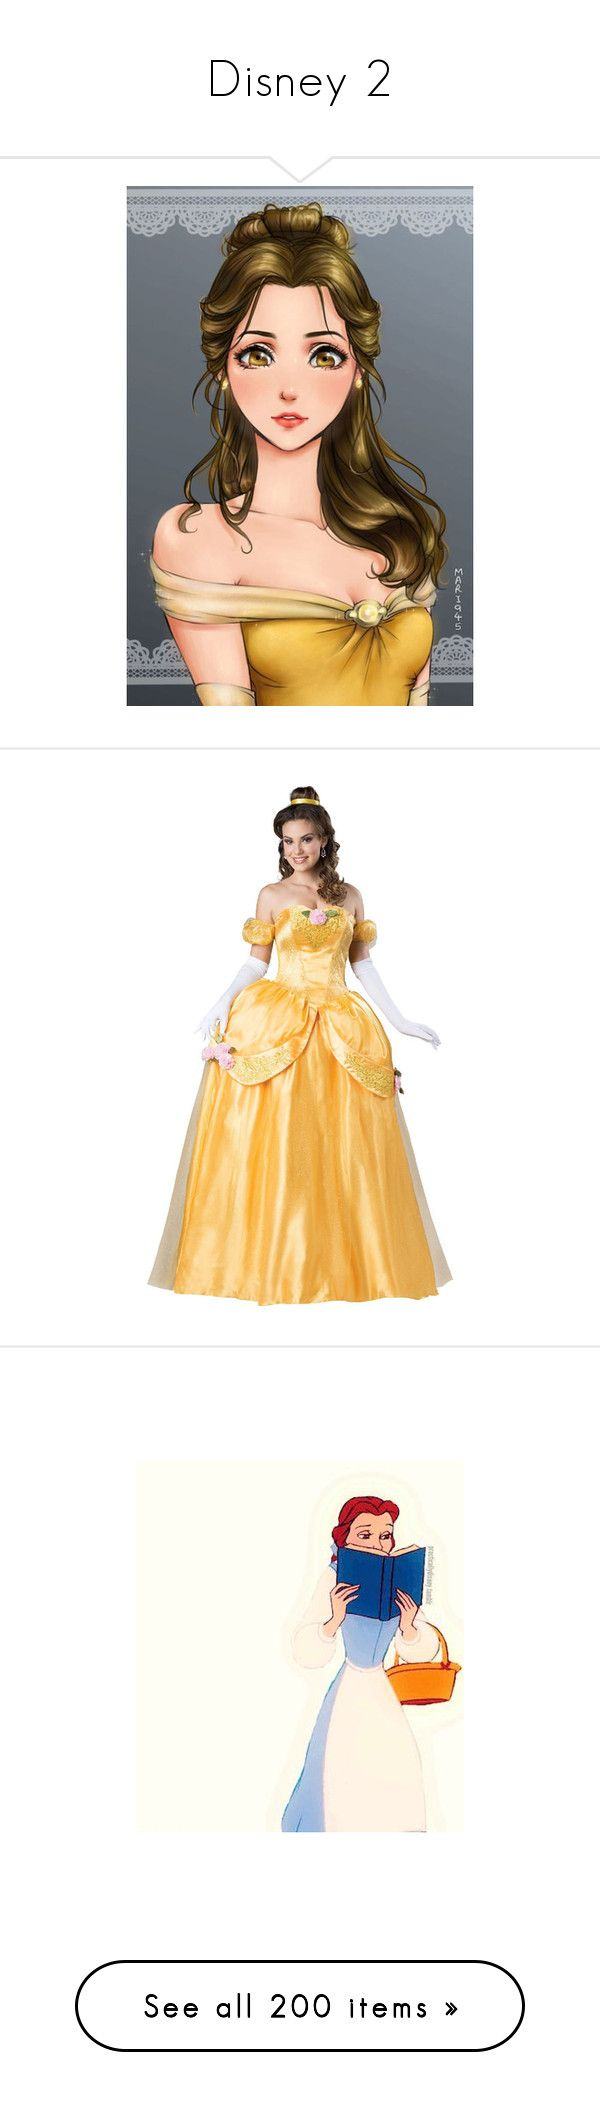 """Disney 2"" by selene-cinzia ❤ liked on Polyvore featuring disney, anime, costumes, dresses, halloween costumes, princess costumes, adult princess costume, adult women costumes, princess belle costume and women's halloween costumes"